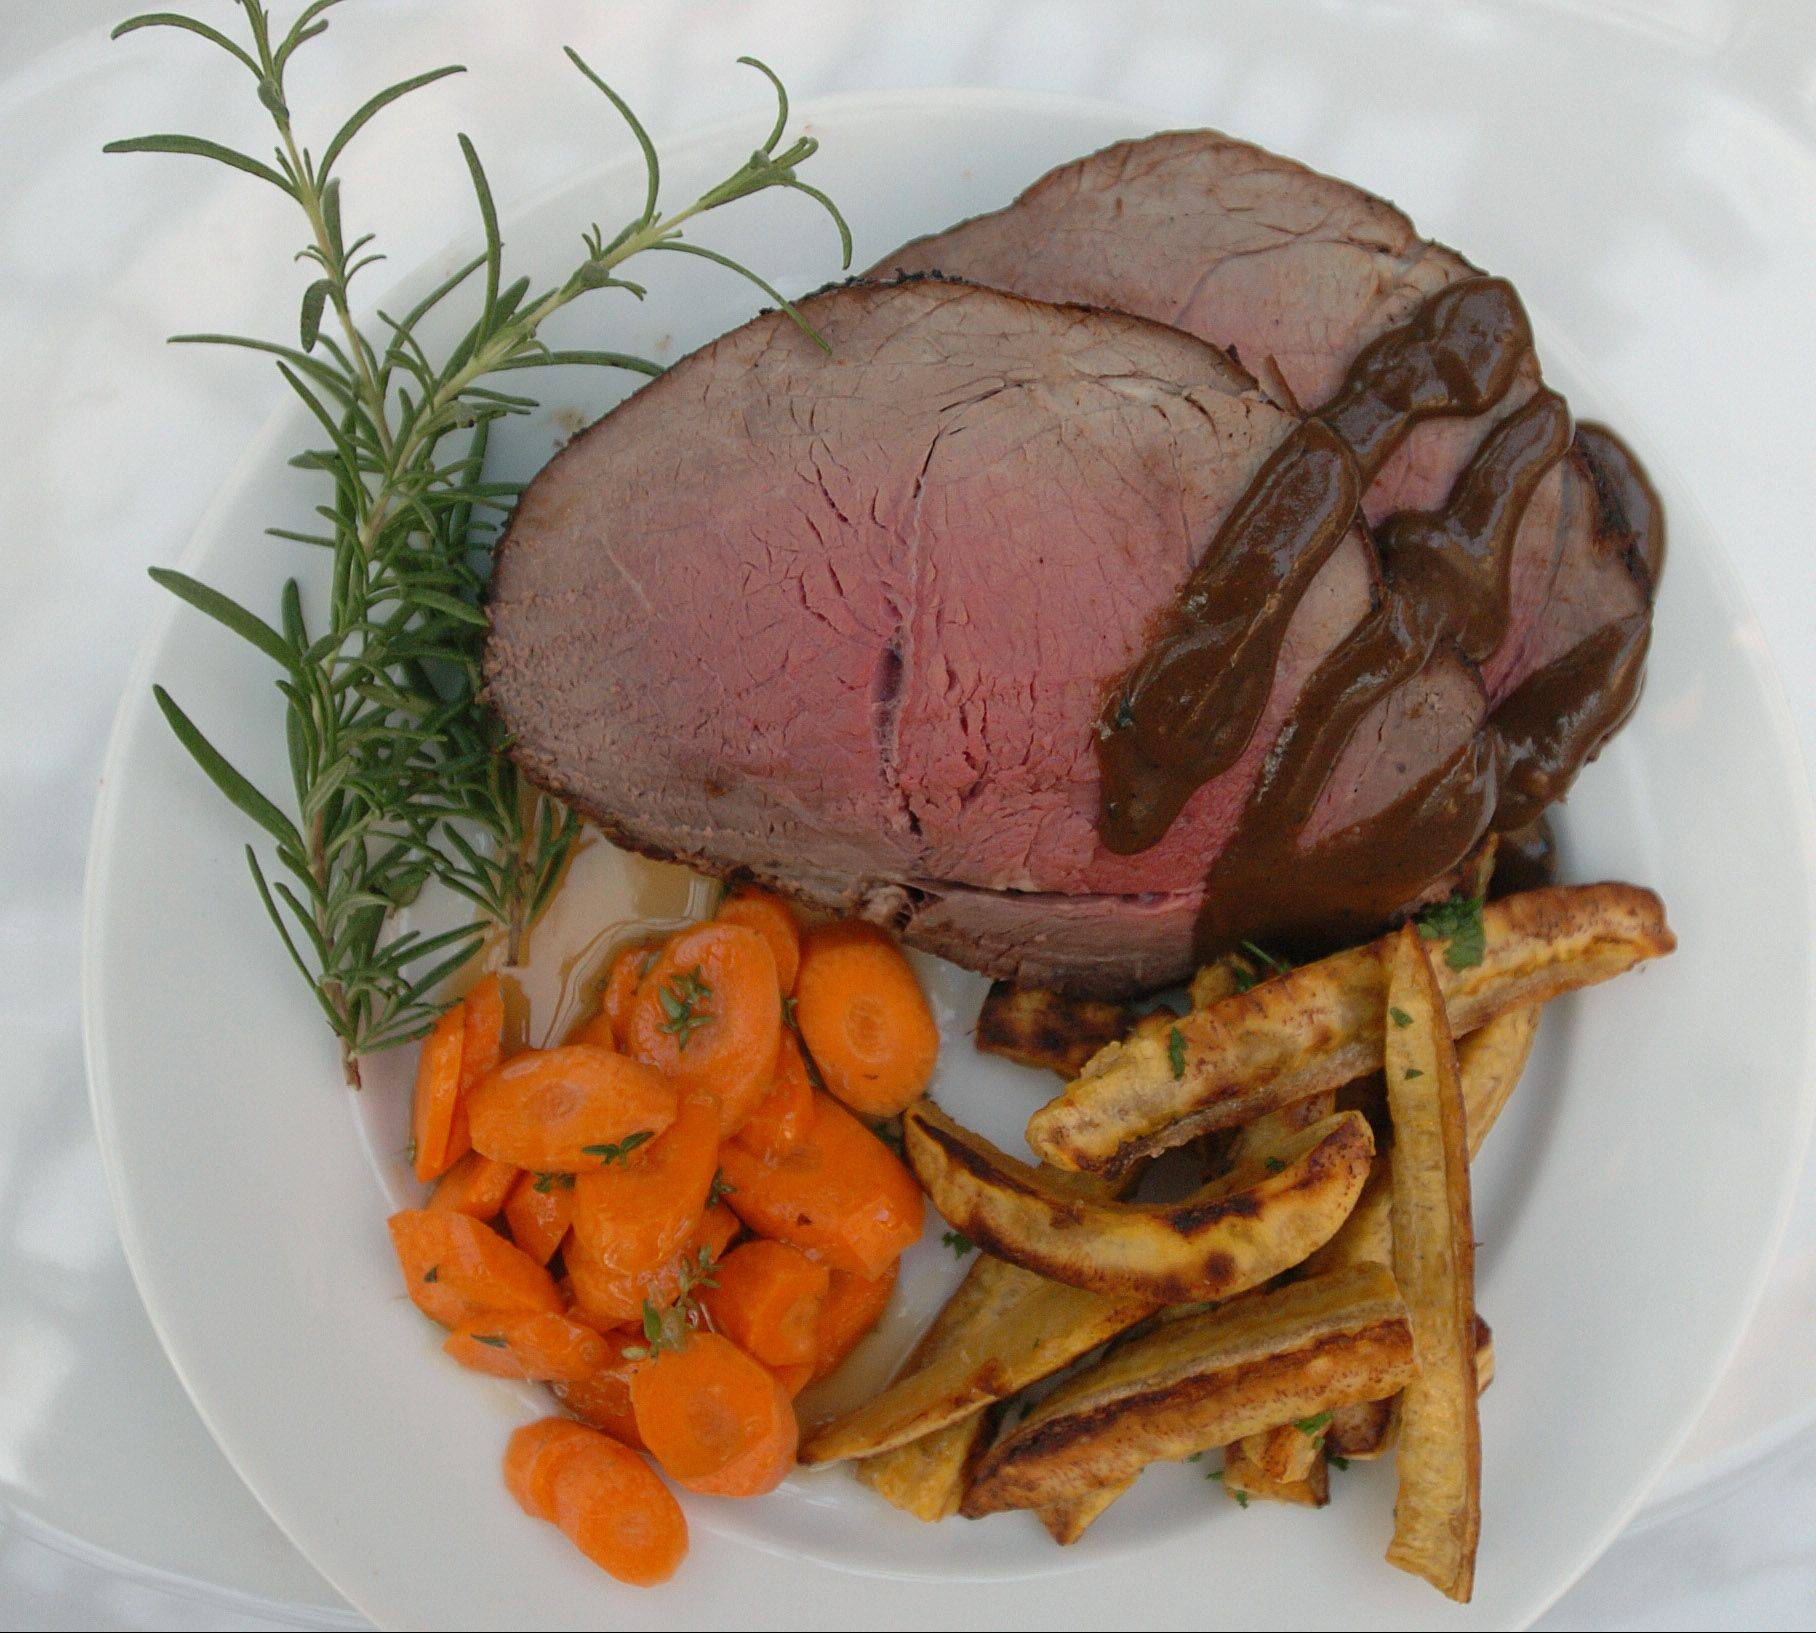 Terri Edmunds's Chocolate Espresso Tri Tip Roast with Roasted Plantain Fries and Citrus-glazed Thyme Carrots